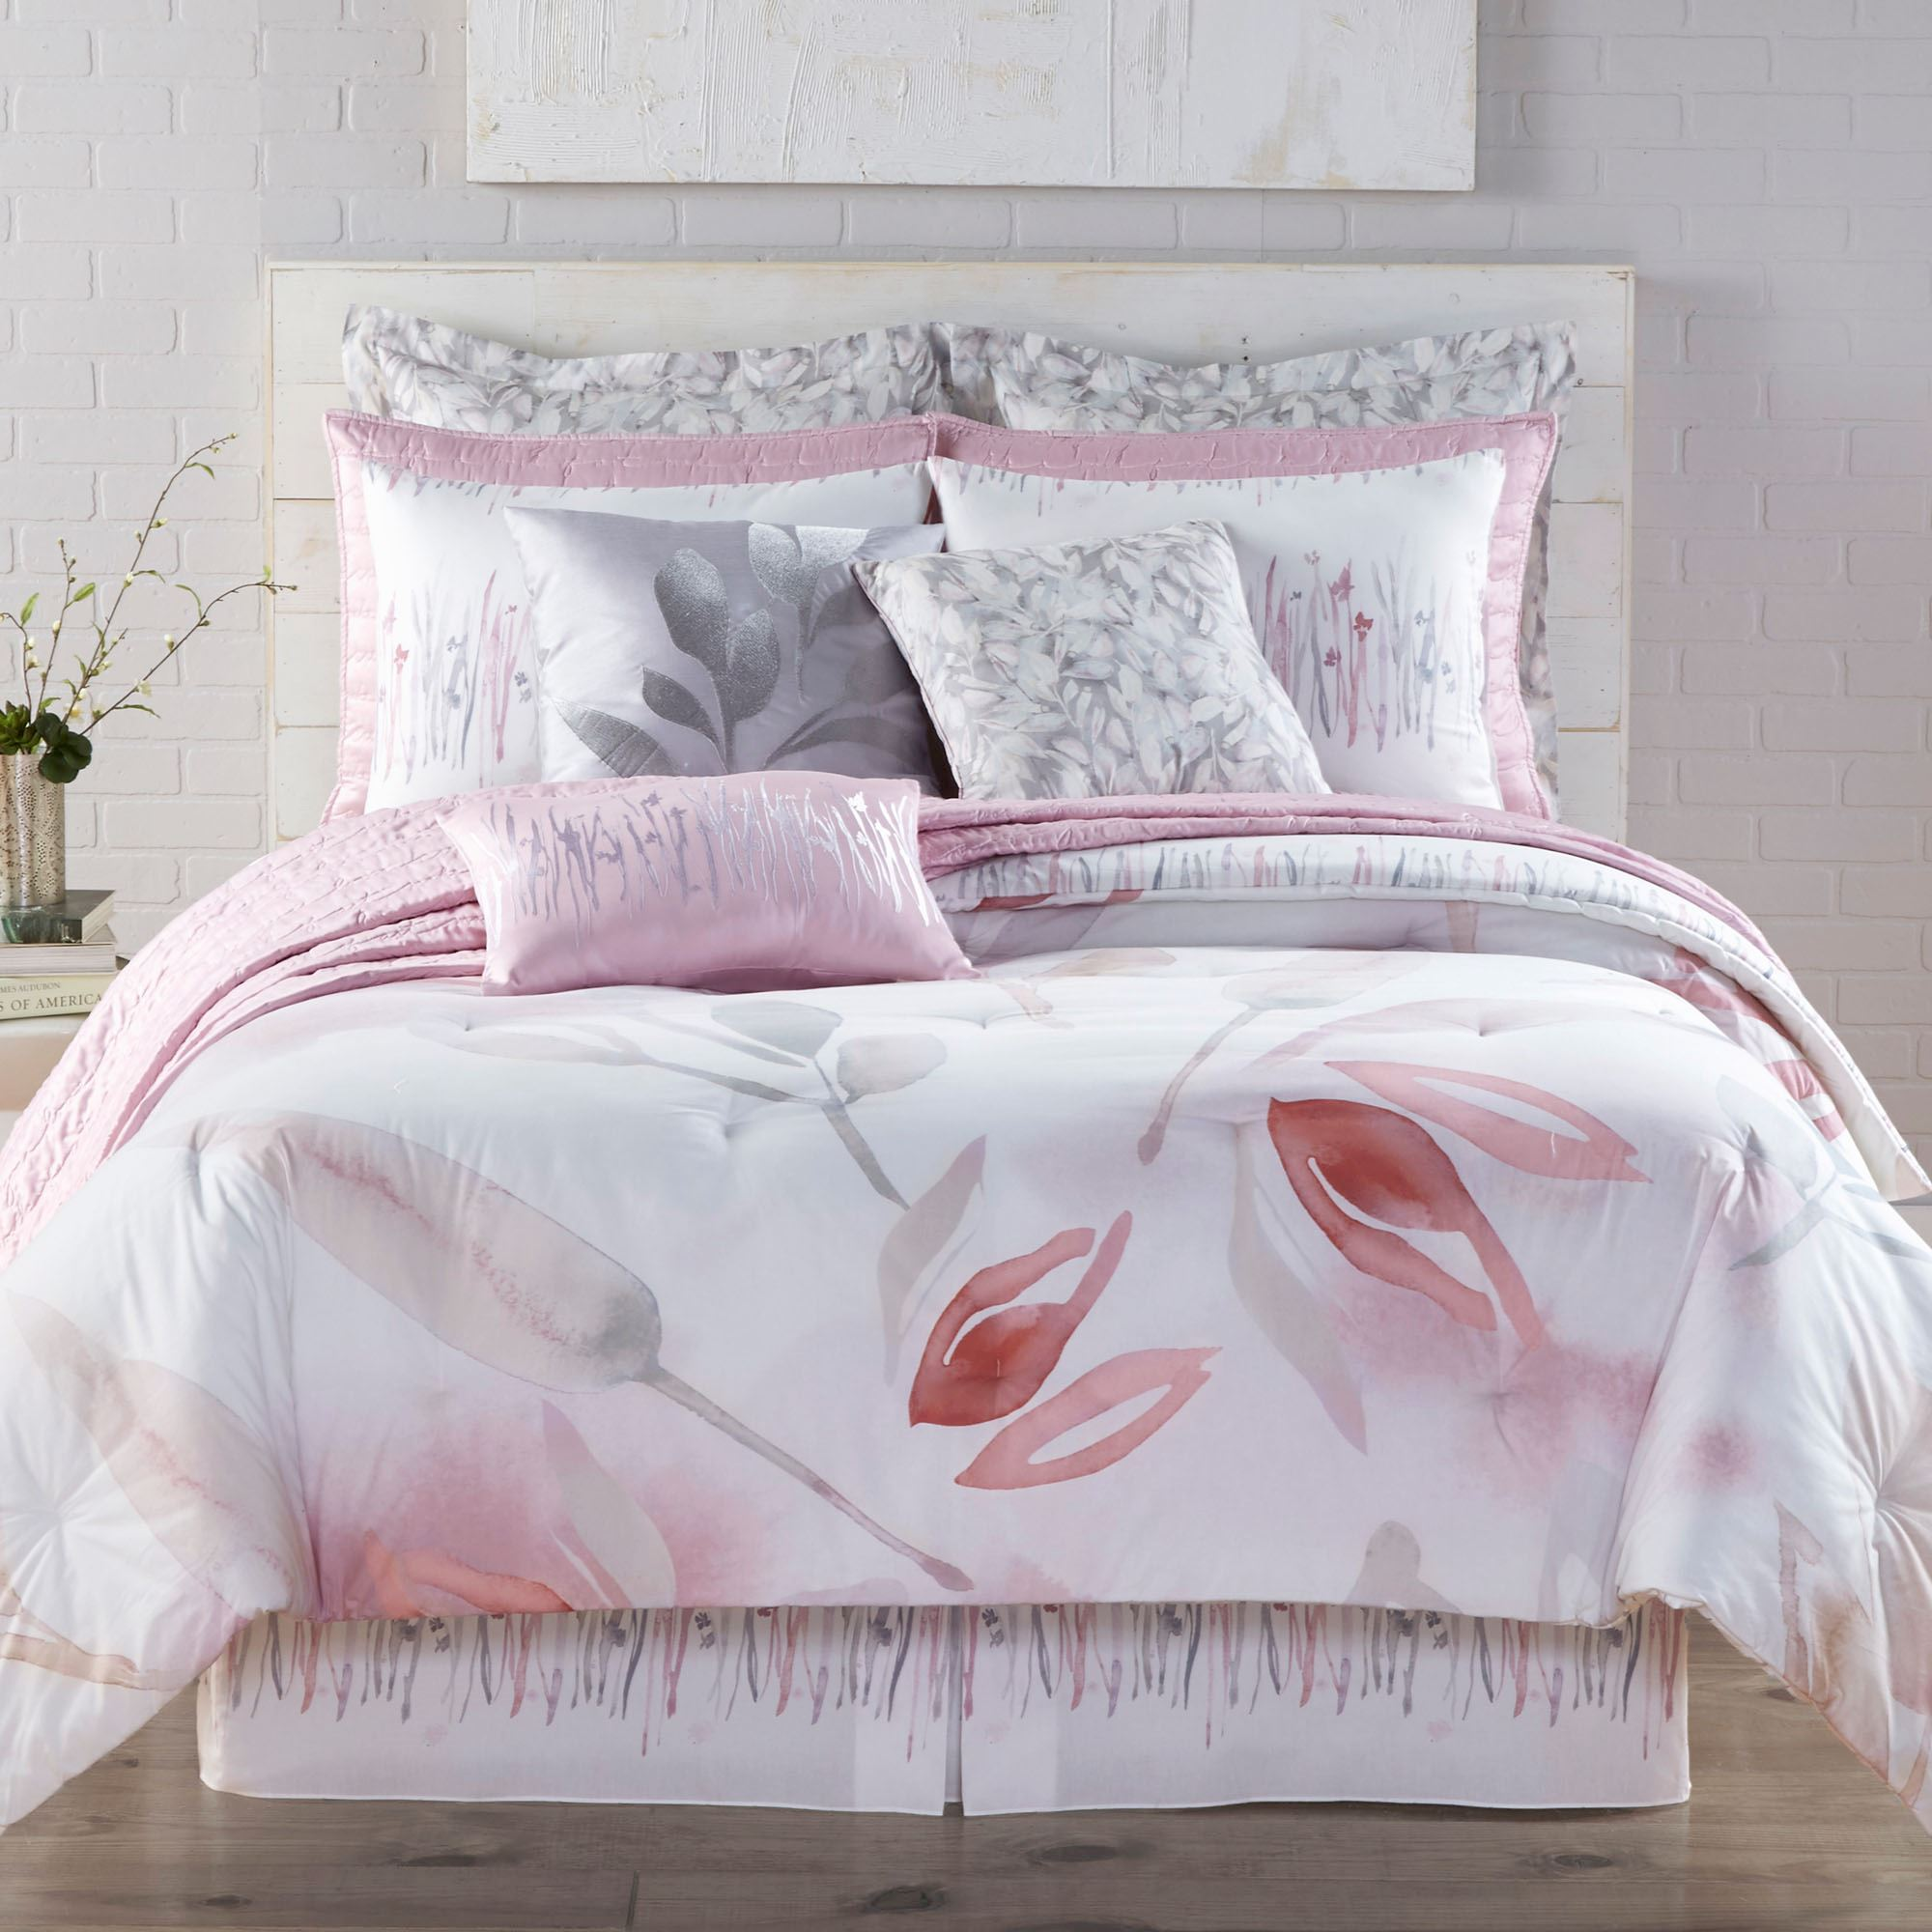 Reflections Reversible Comforter Set by Kathy Davis